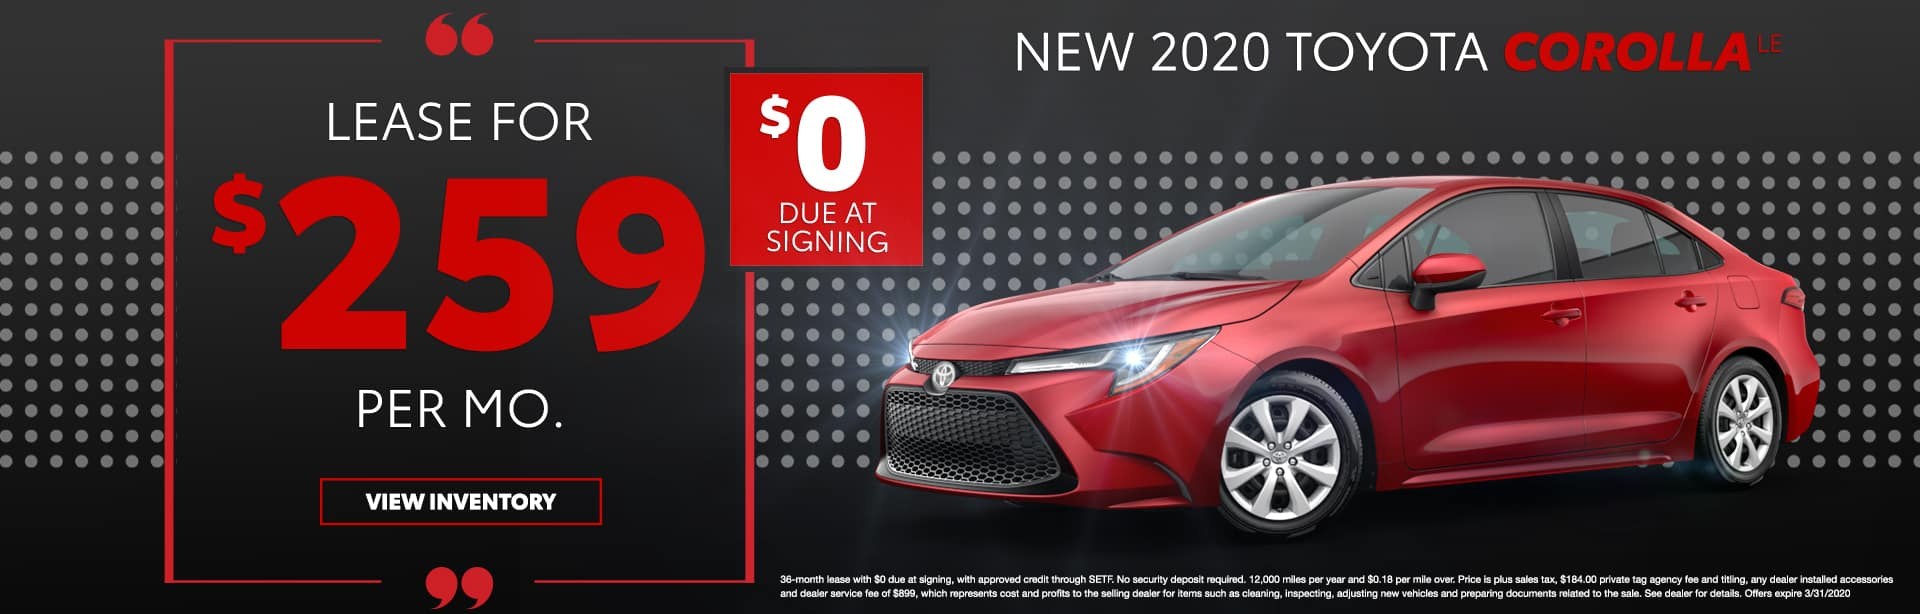 New 2020 Toyota Corolla LE | Lease For $259 Per Mo | $0 Due At Signing